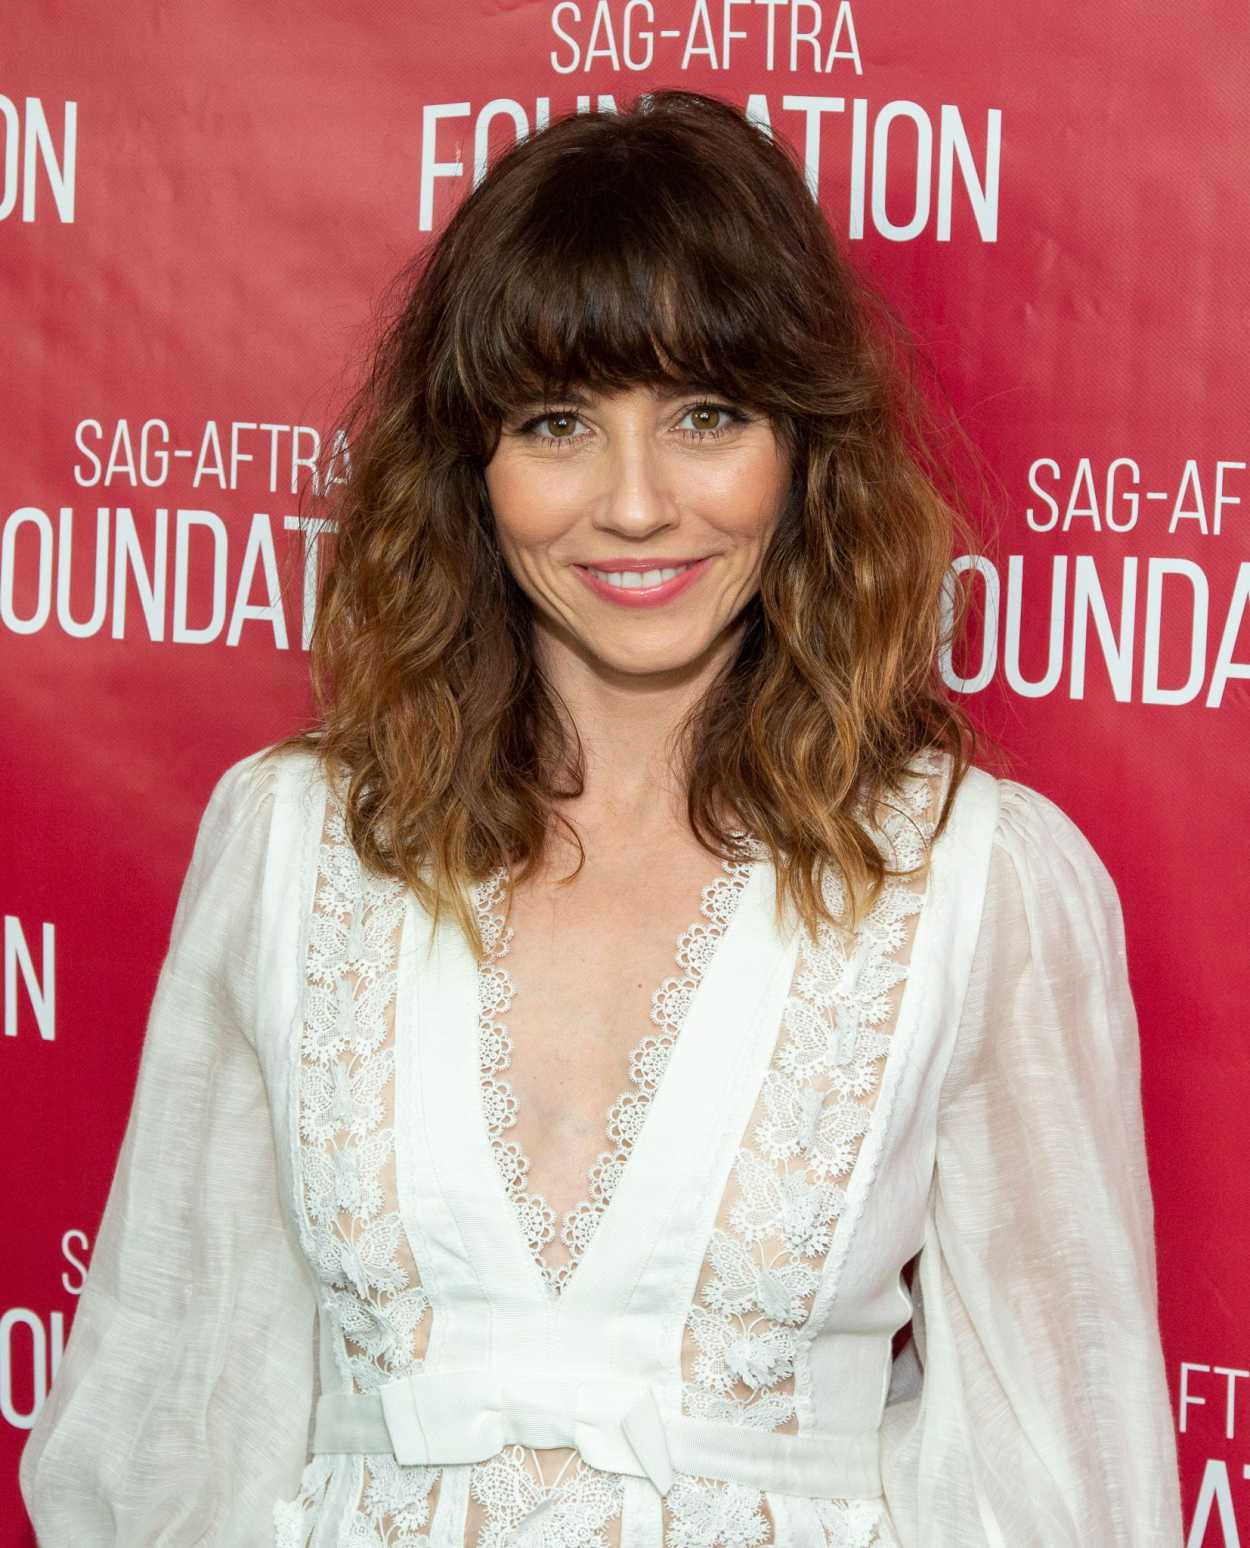 Linda Cardellini Attends The SAG-AFTRA Foundation